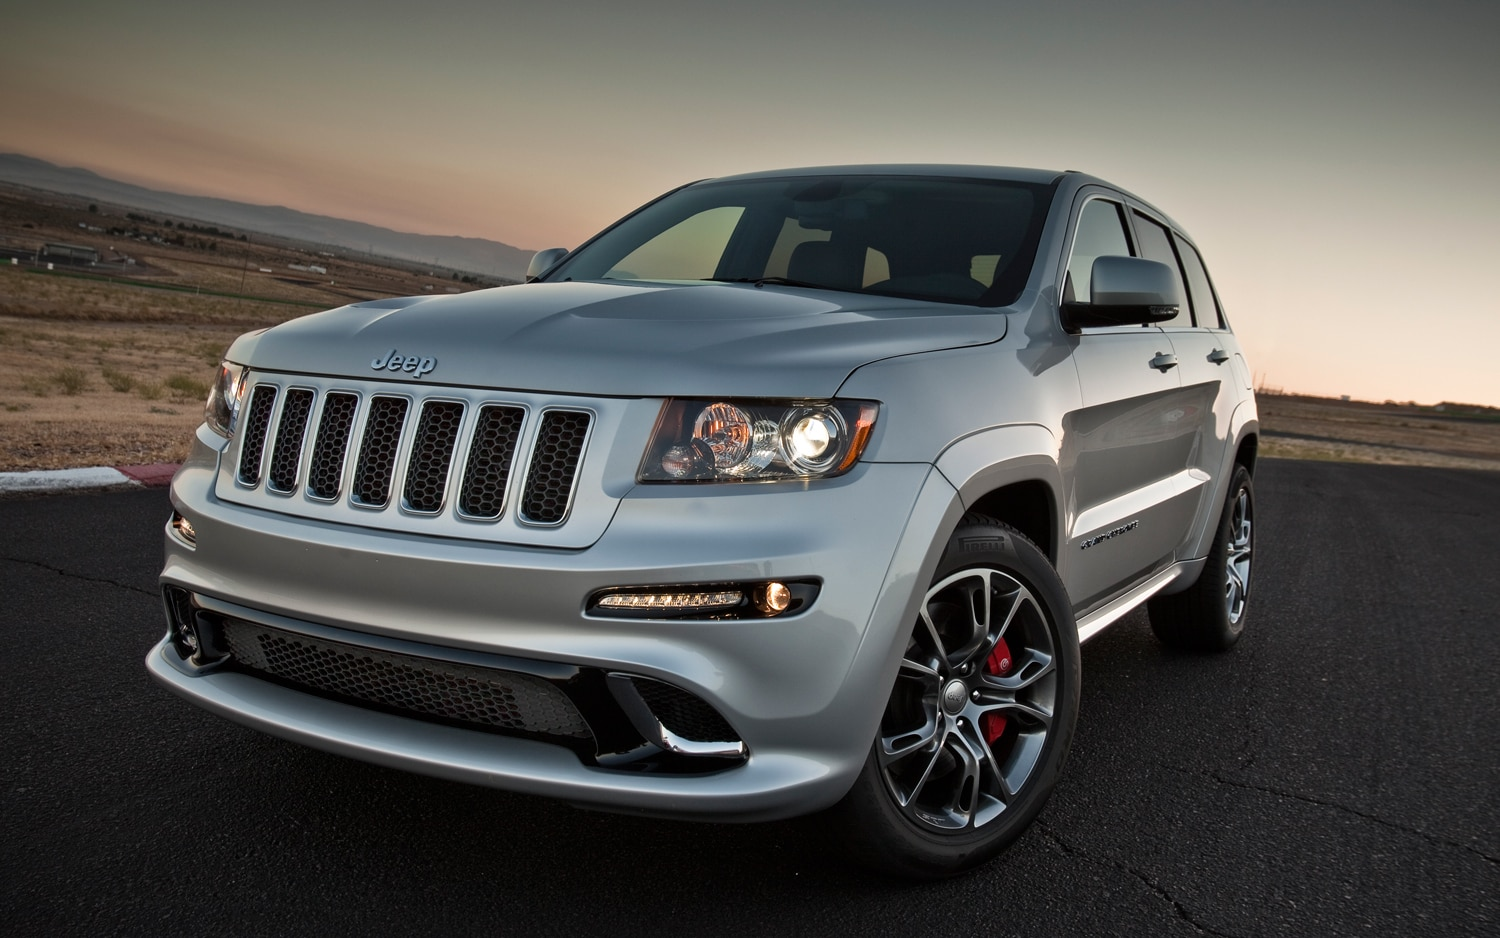 2012 jeep grand cherokee srt8 first drive automobile magazine. Black Bedroom Furniture Sets. Home Design Ideas